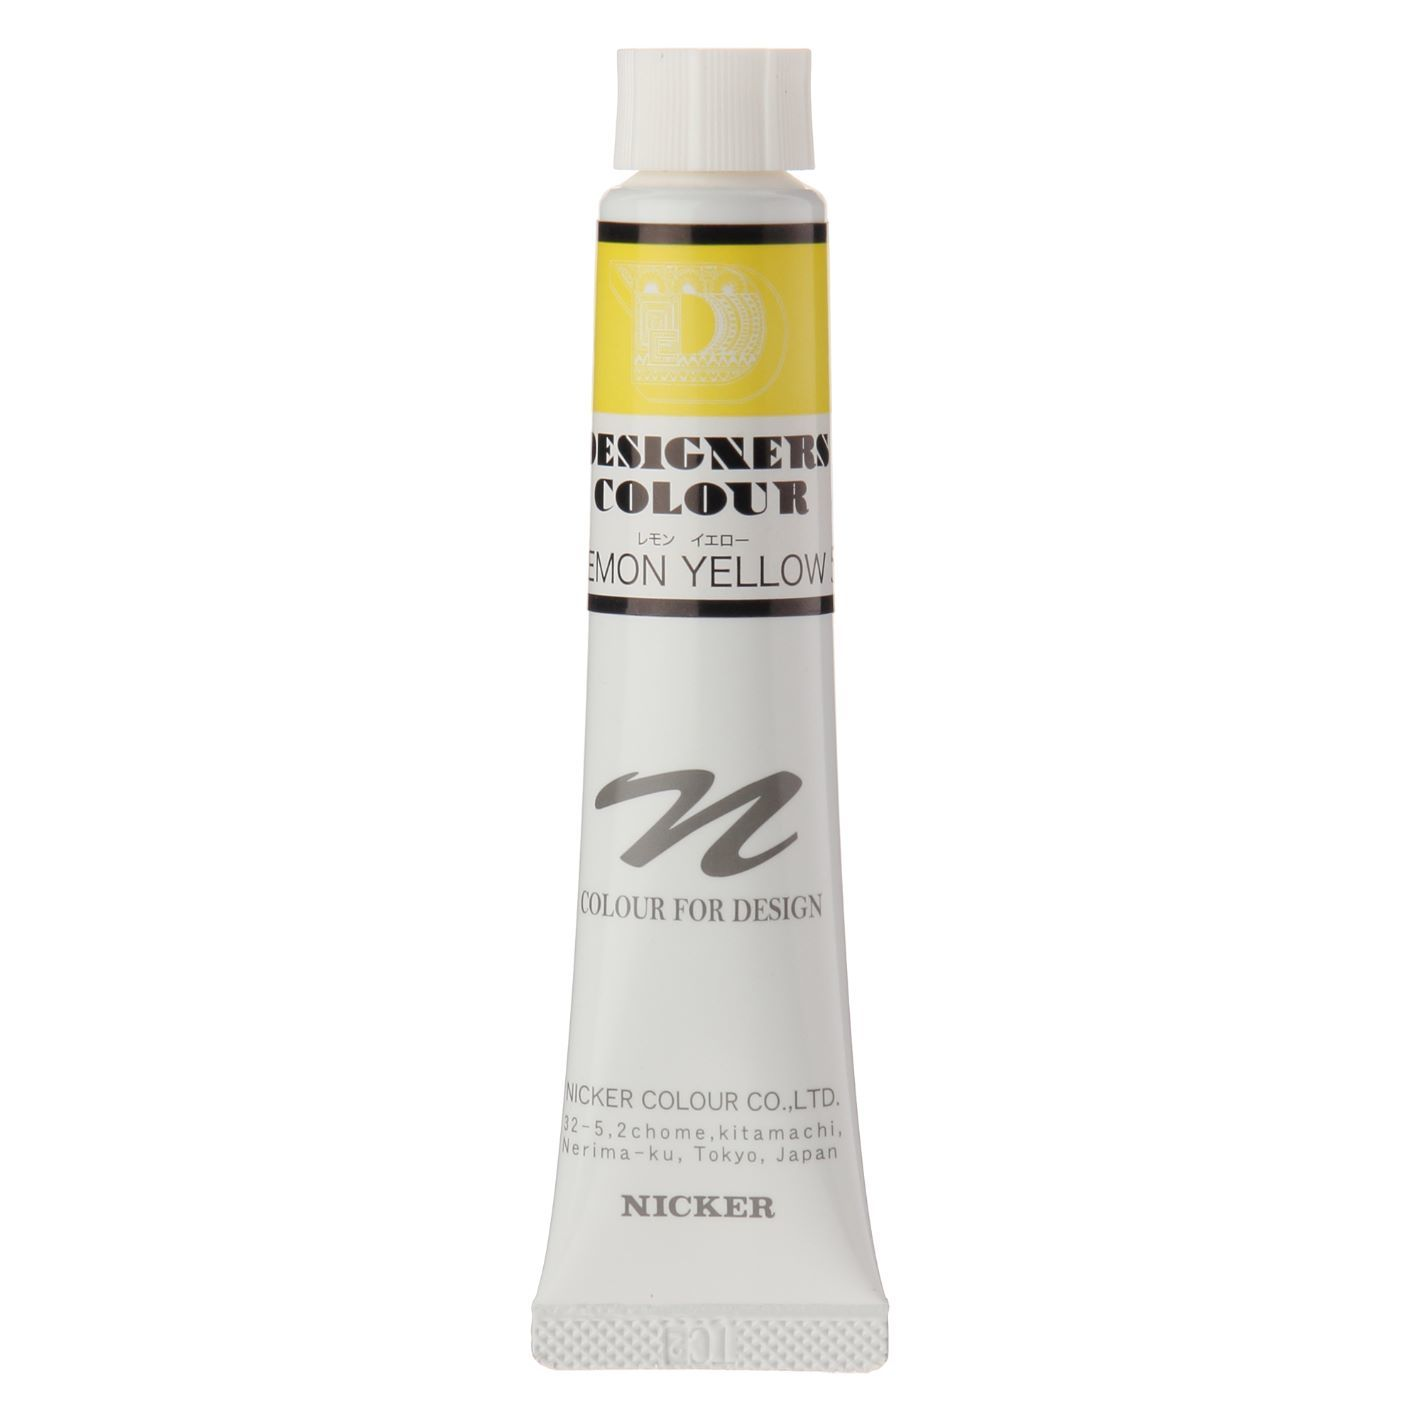 Nicker Designers Color 20ml 501 LEMON YELLOW